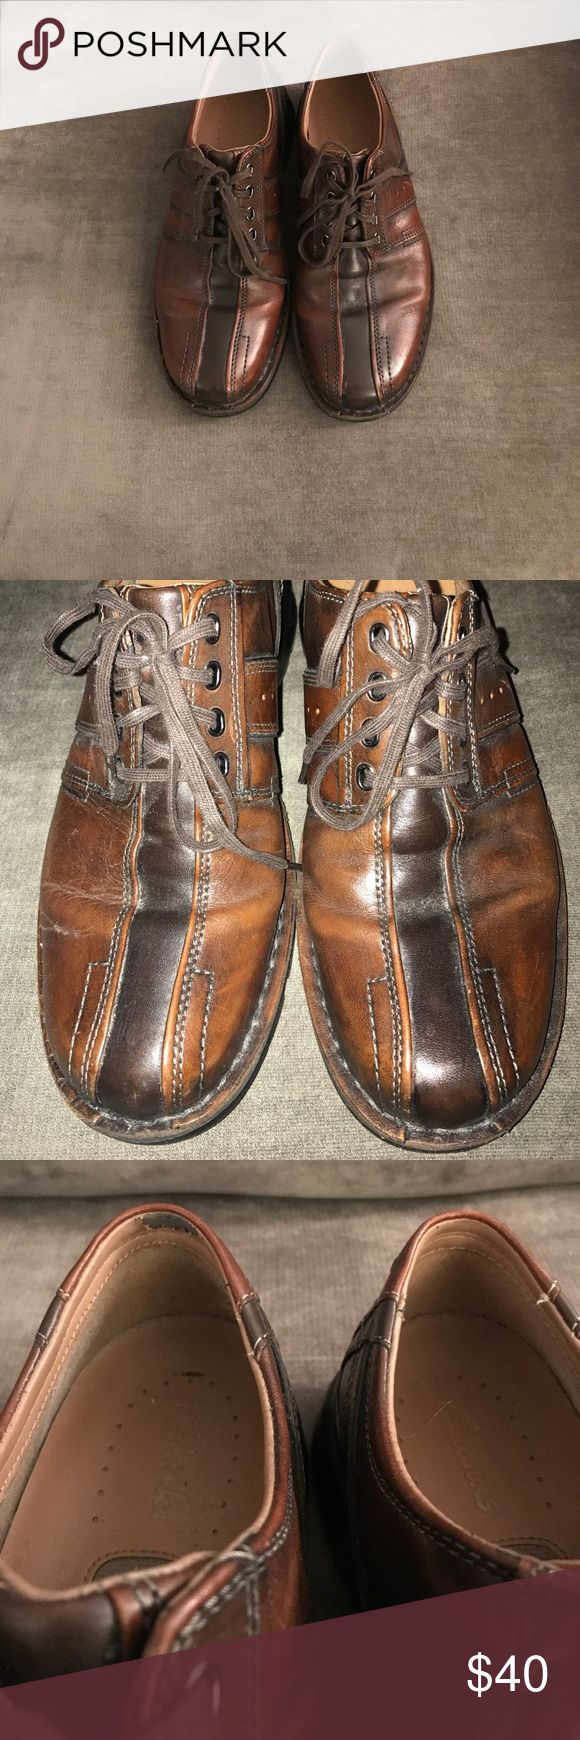 NEW! Men's Clarks Shoes Men's Clarks Touareg Vibe shoes in brown leather. Shoes are lace up with a rubber sole. Size 10. Shoes have minimal wear the back right heel has some peeling as pictured, but soles and outer leather are in great condition. Clarks Shoes